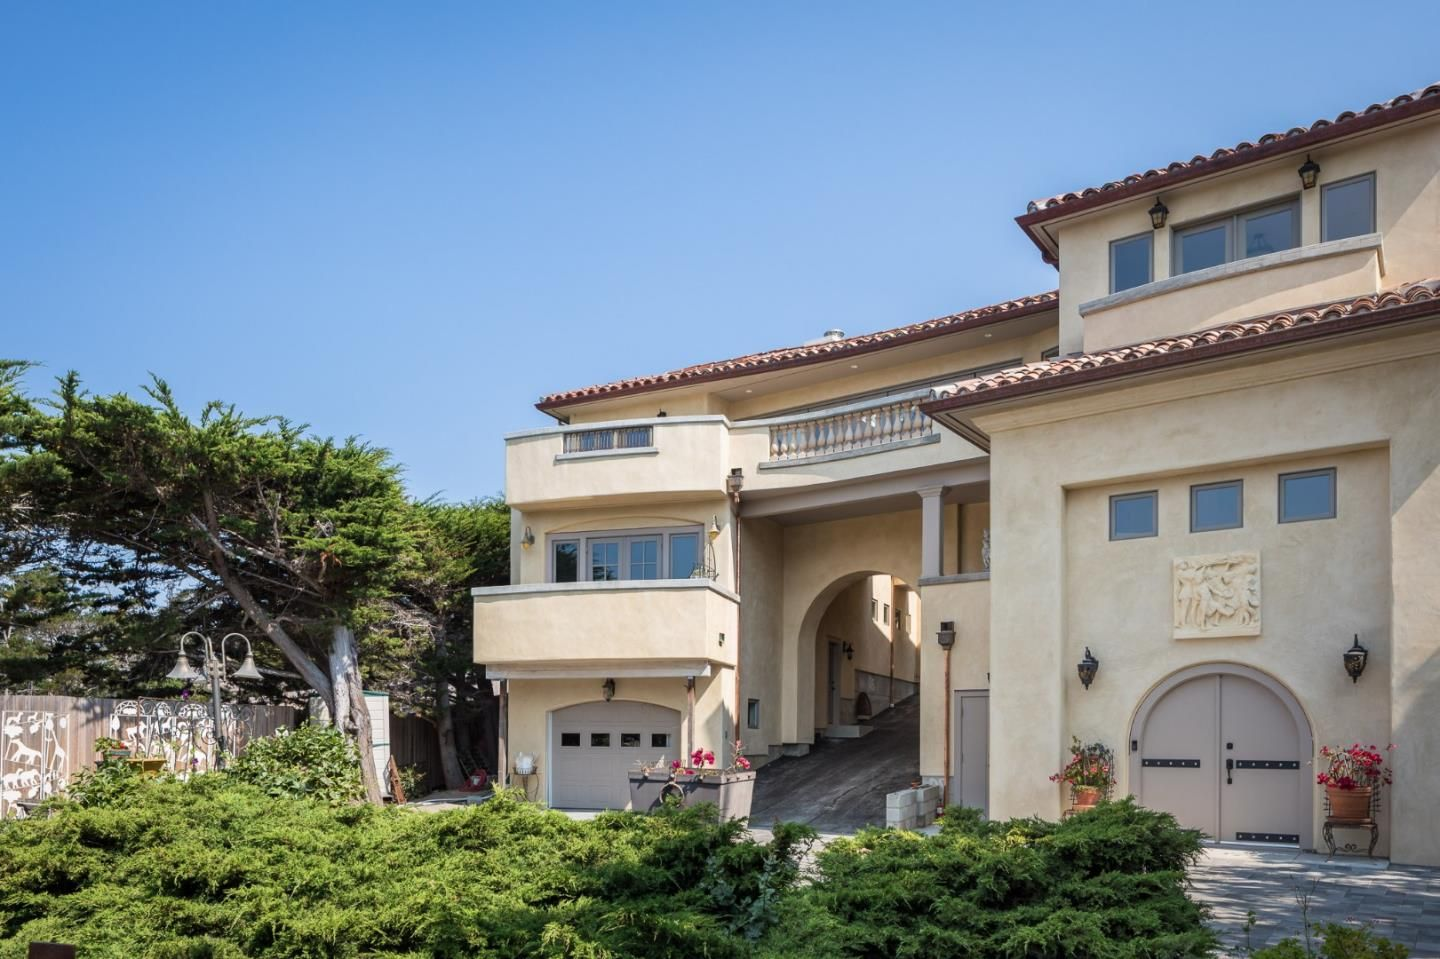 Carmel Ca Real Estate Market Updates Check Out This 4 Bedroom 2 5 Bath Property Located At 3285 Martin Rd In California Real Estate Real Estate Sale House